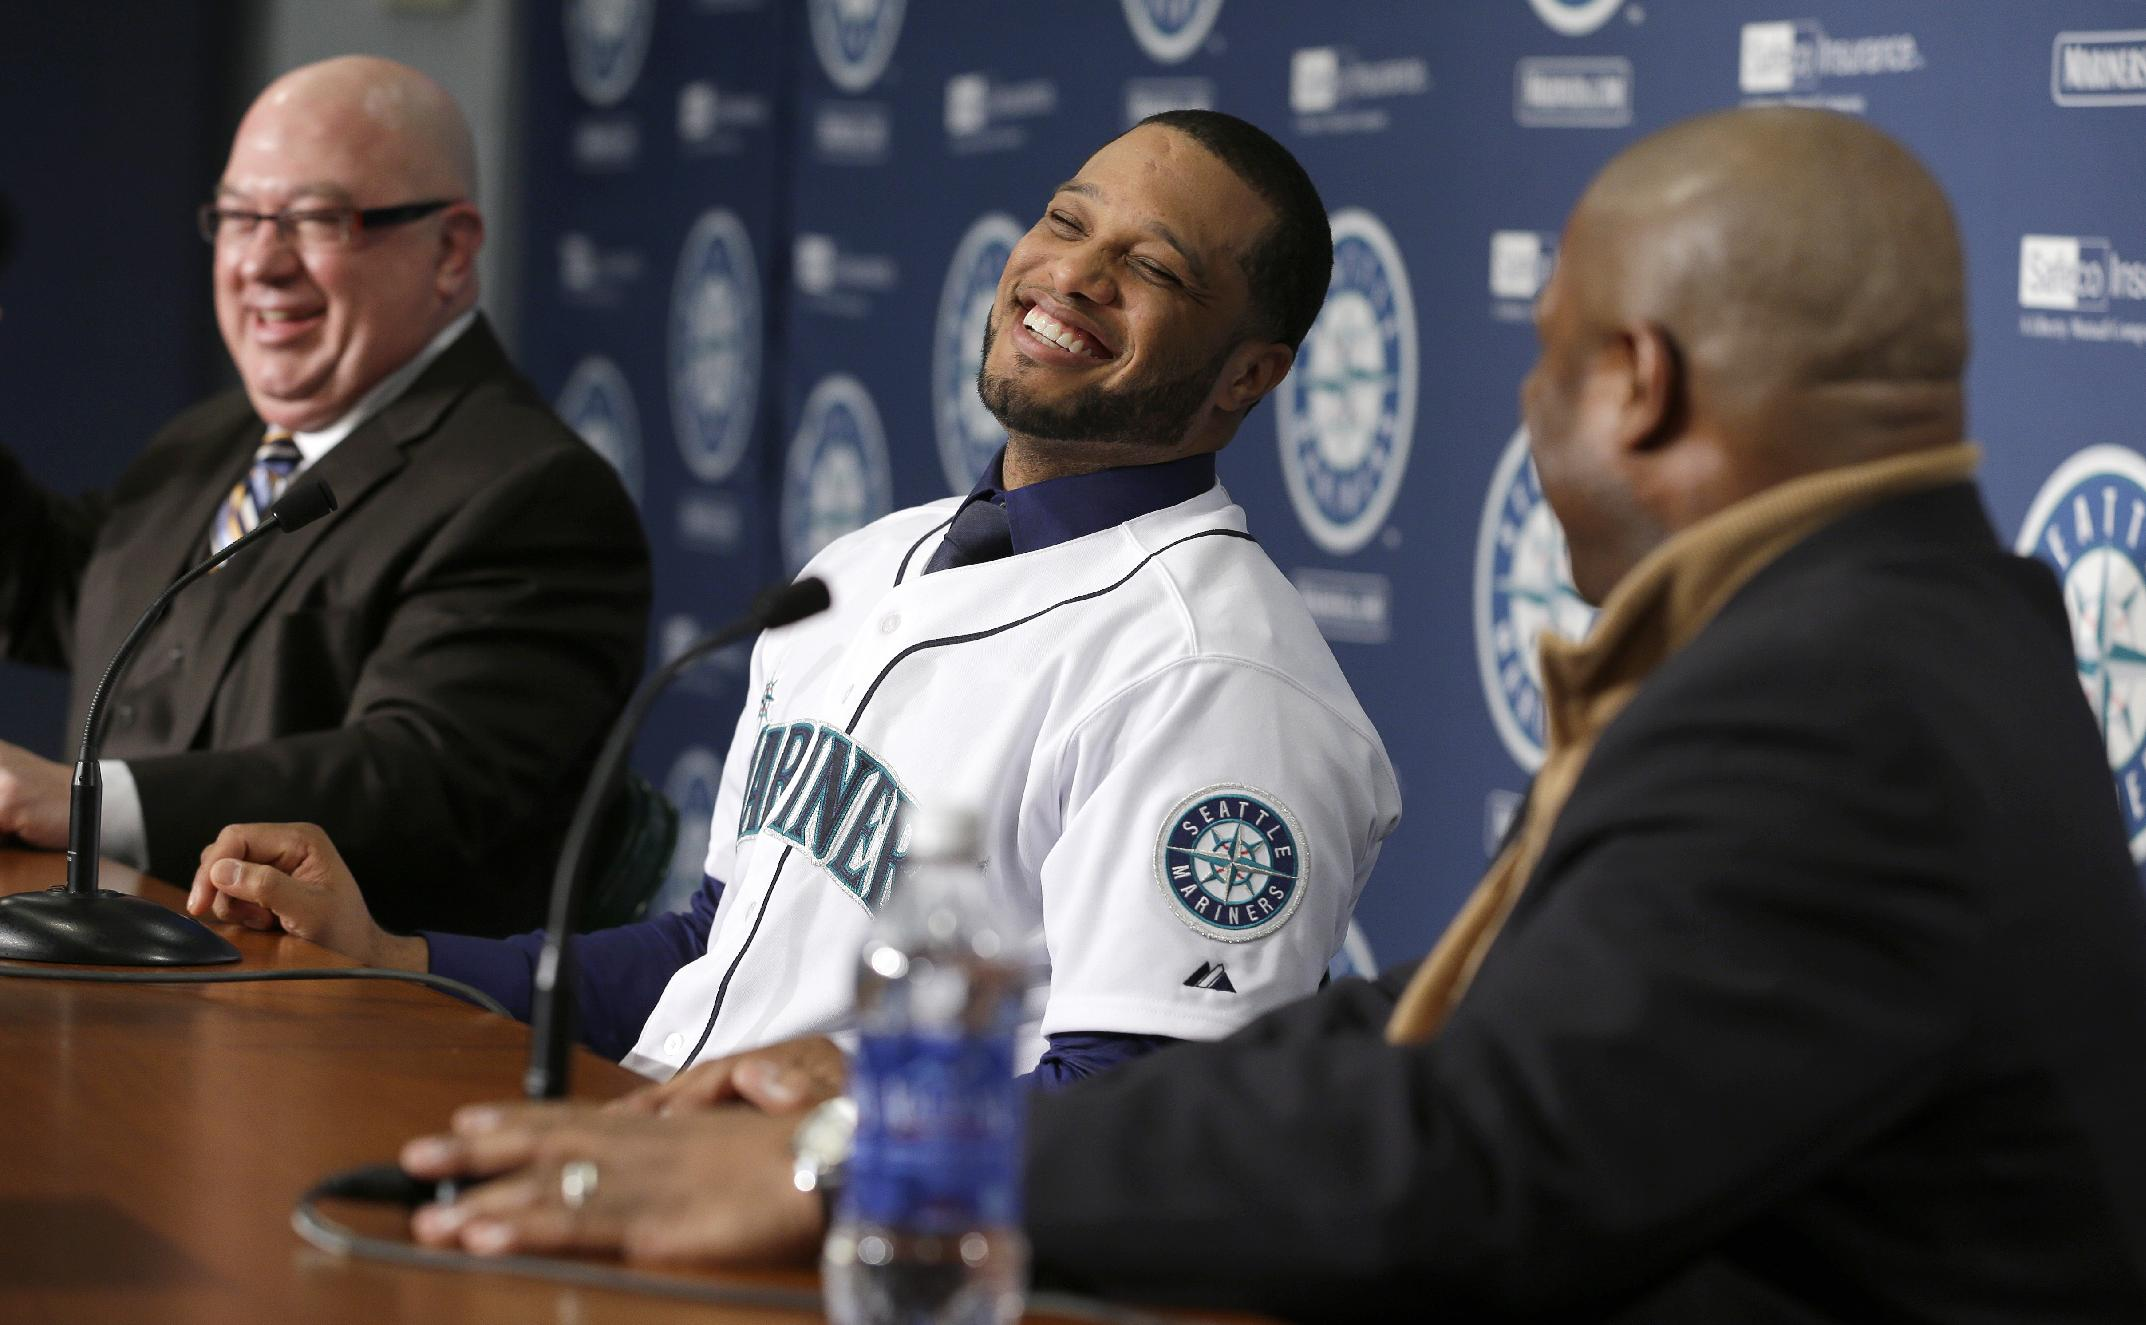 2B Robinson Cano, Mariners finalize huge contract